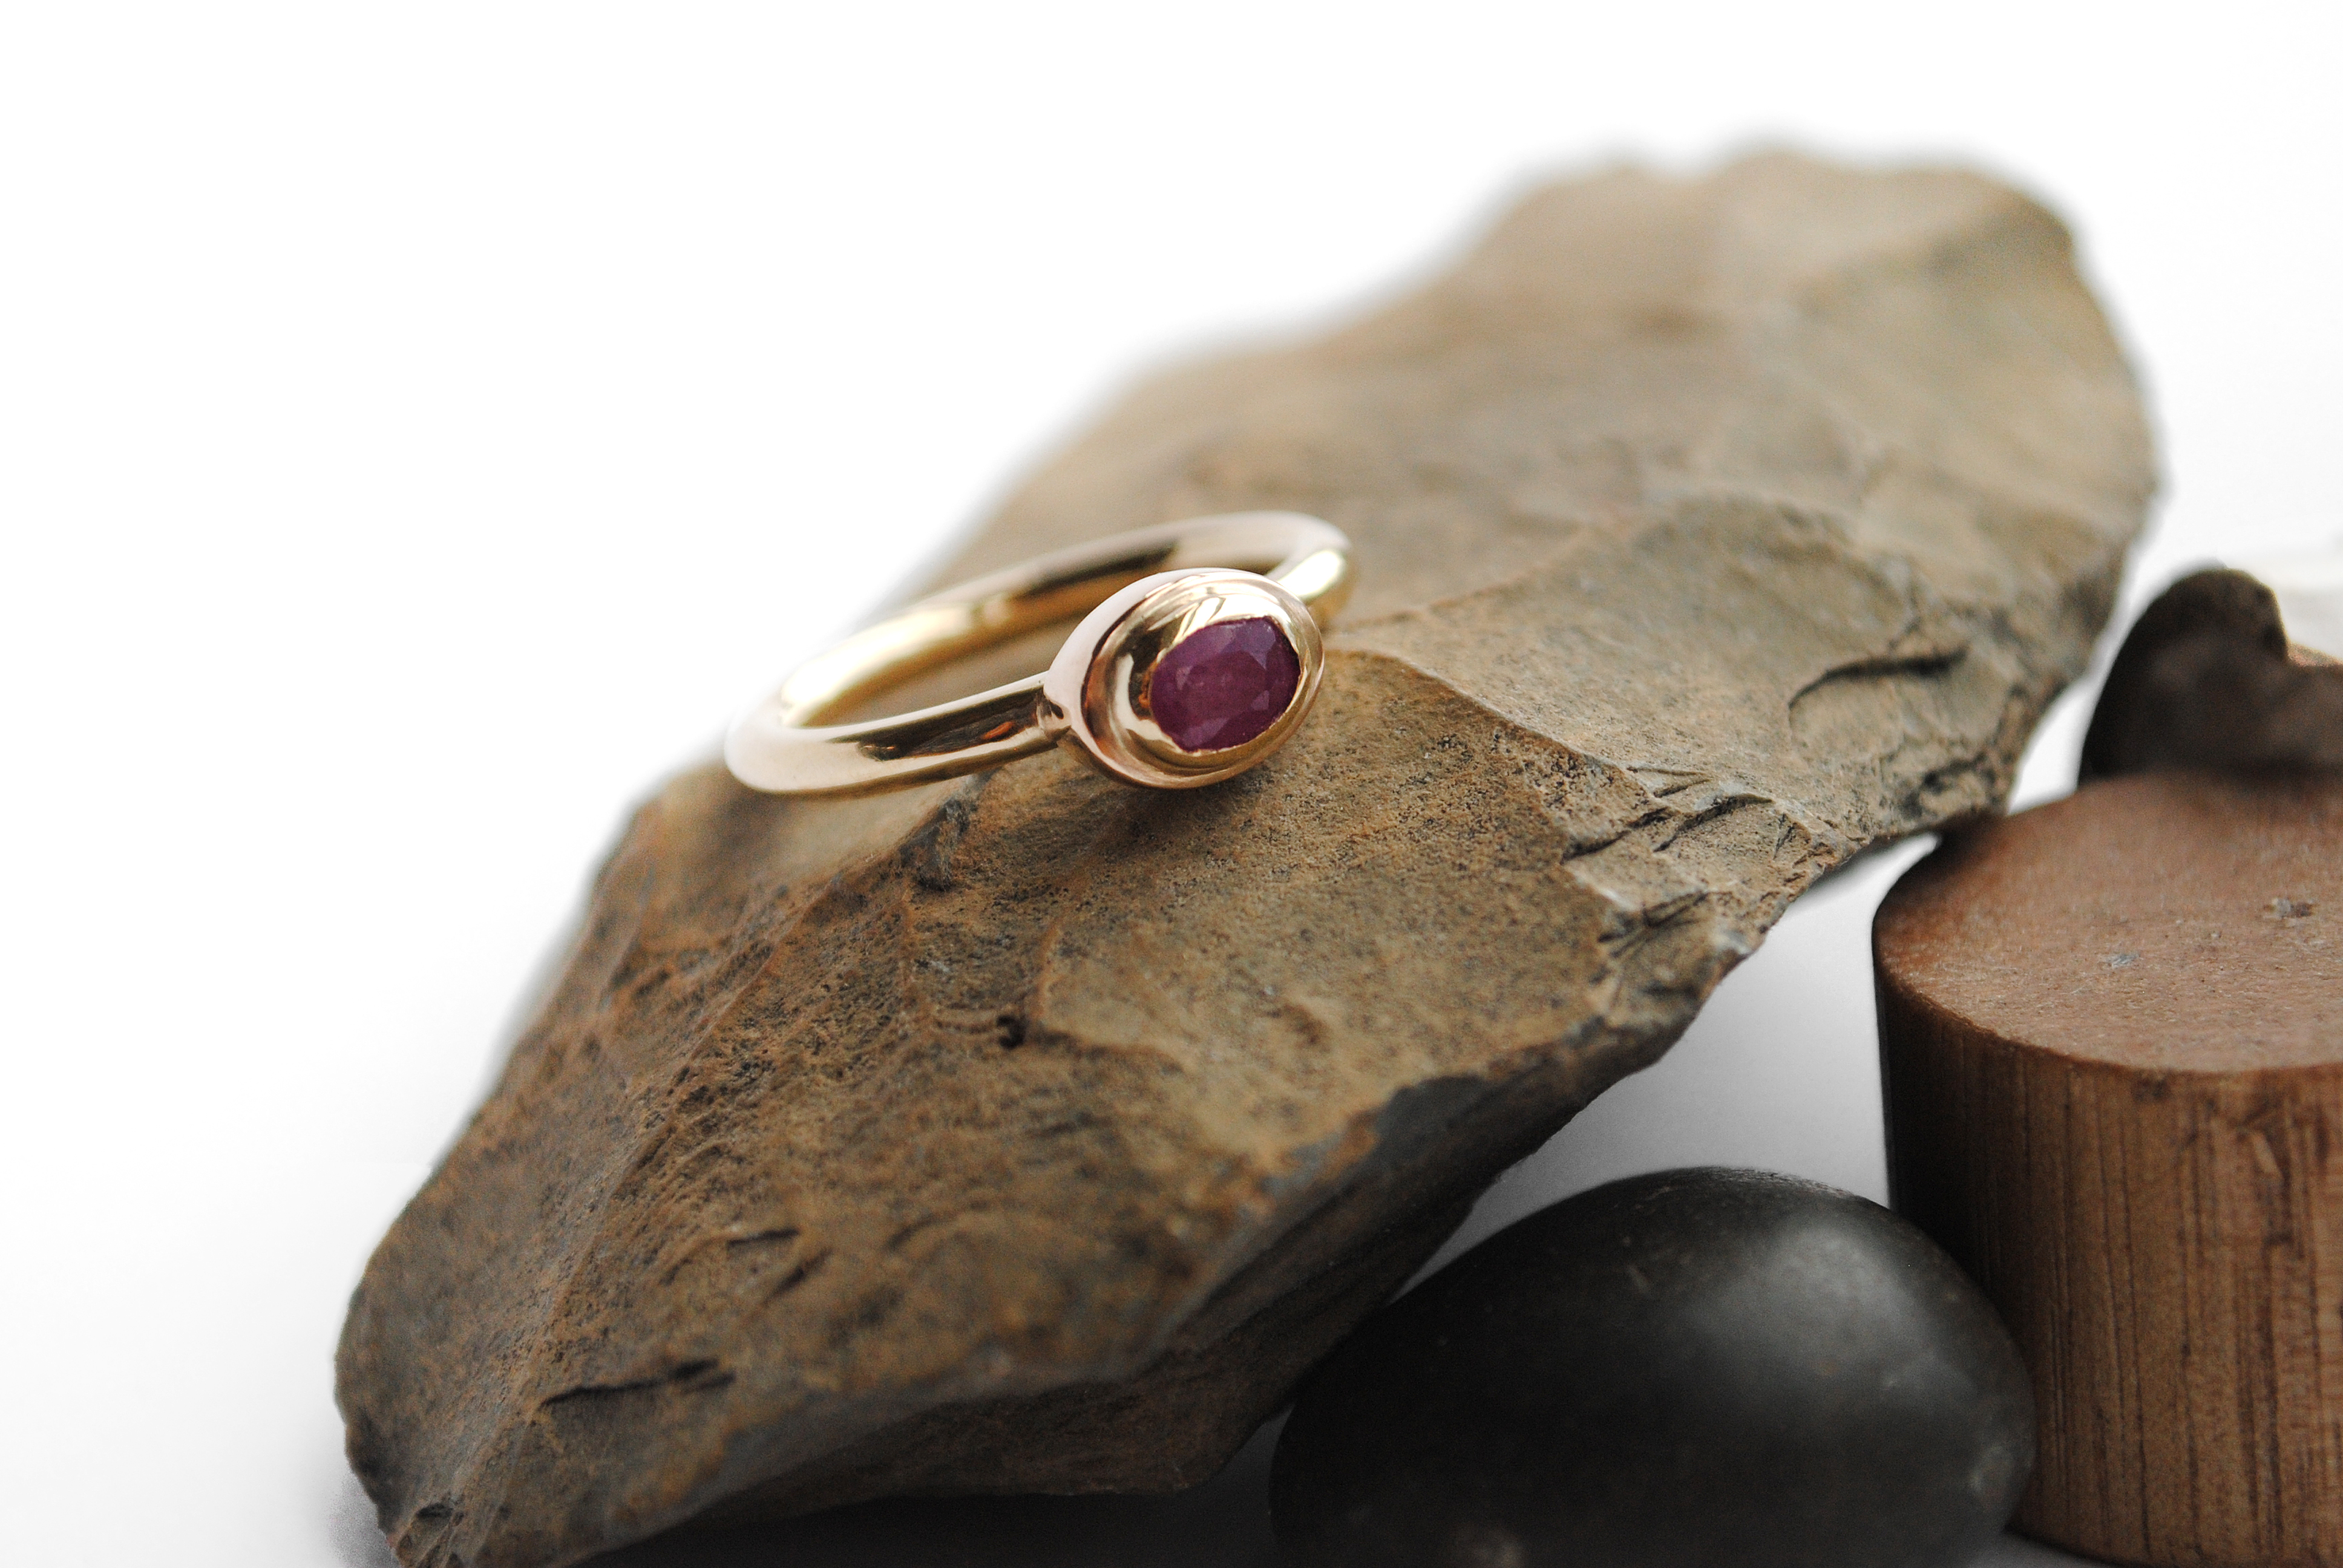 Glacier Ruby 9ct gold ring